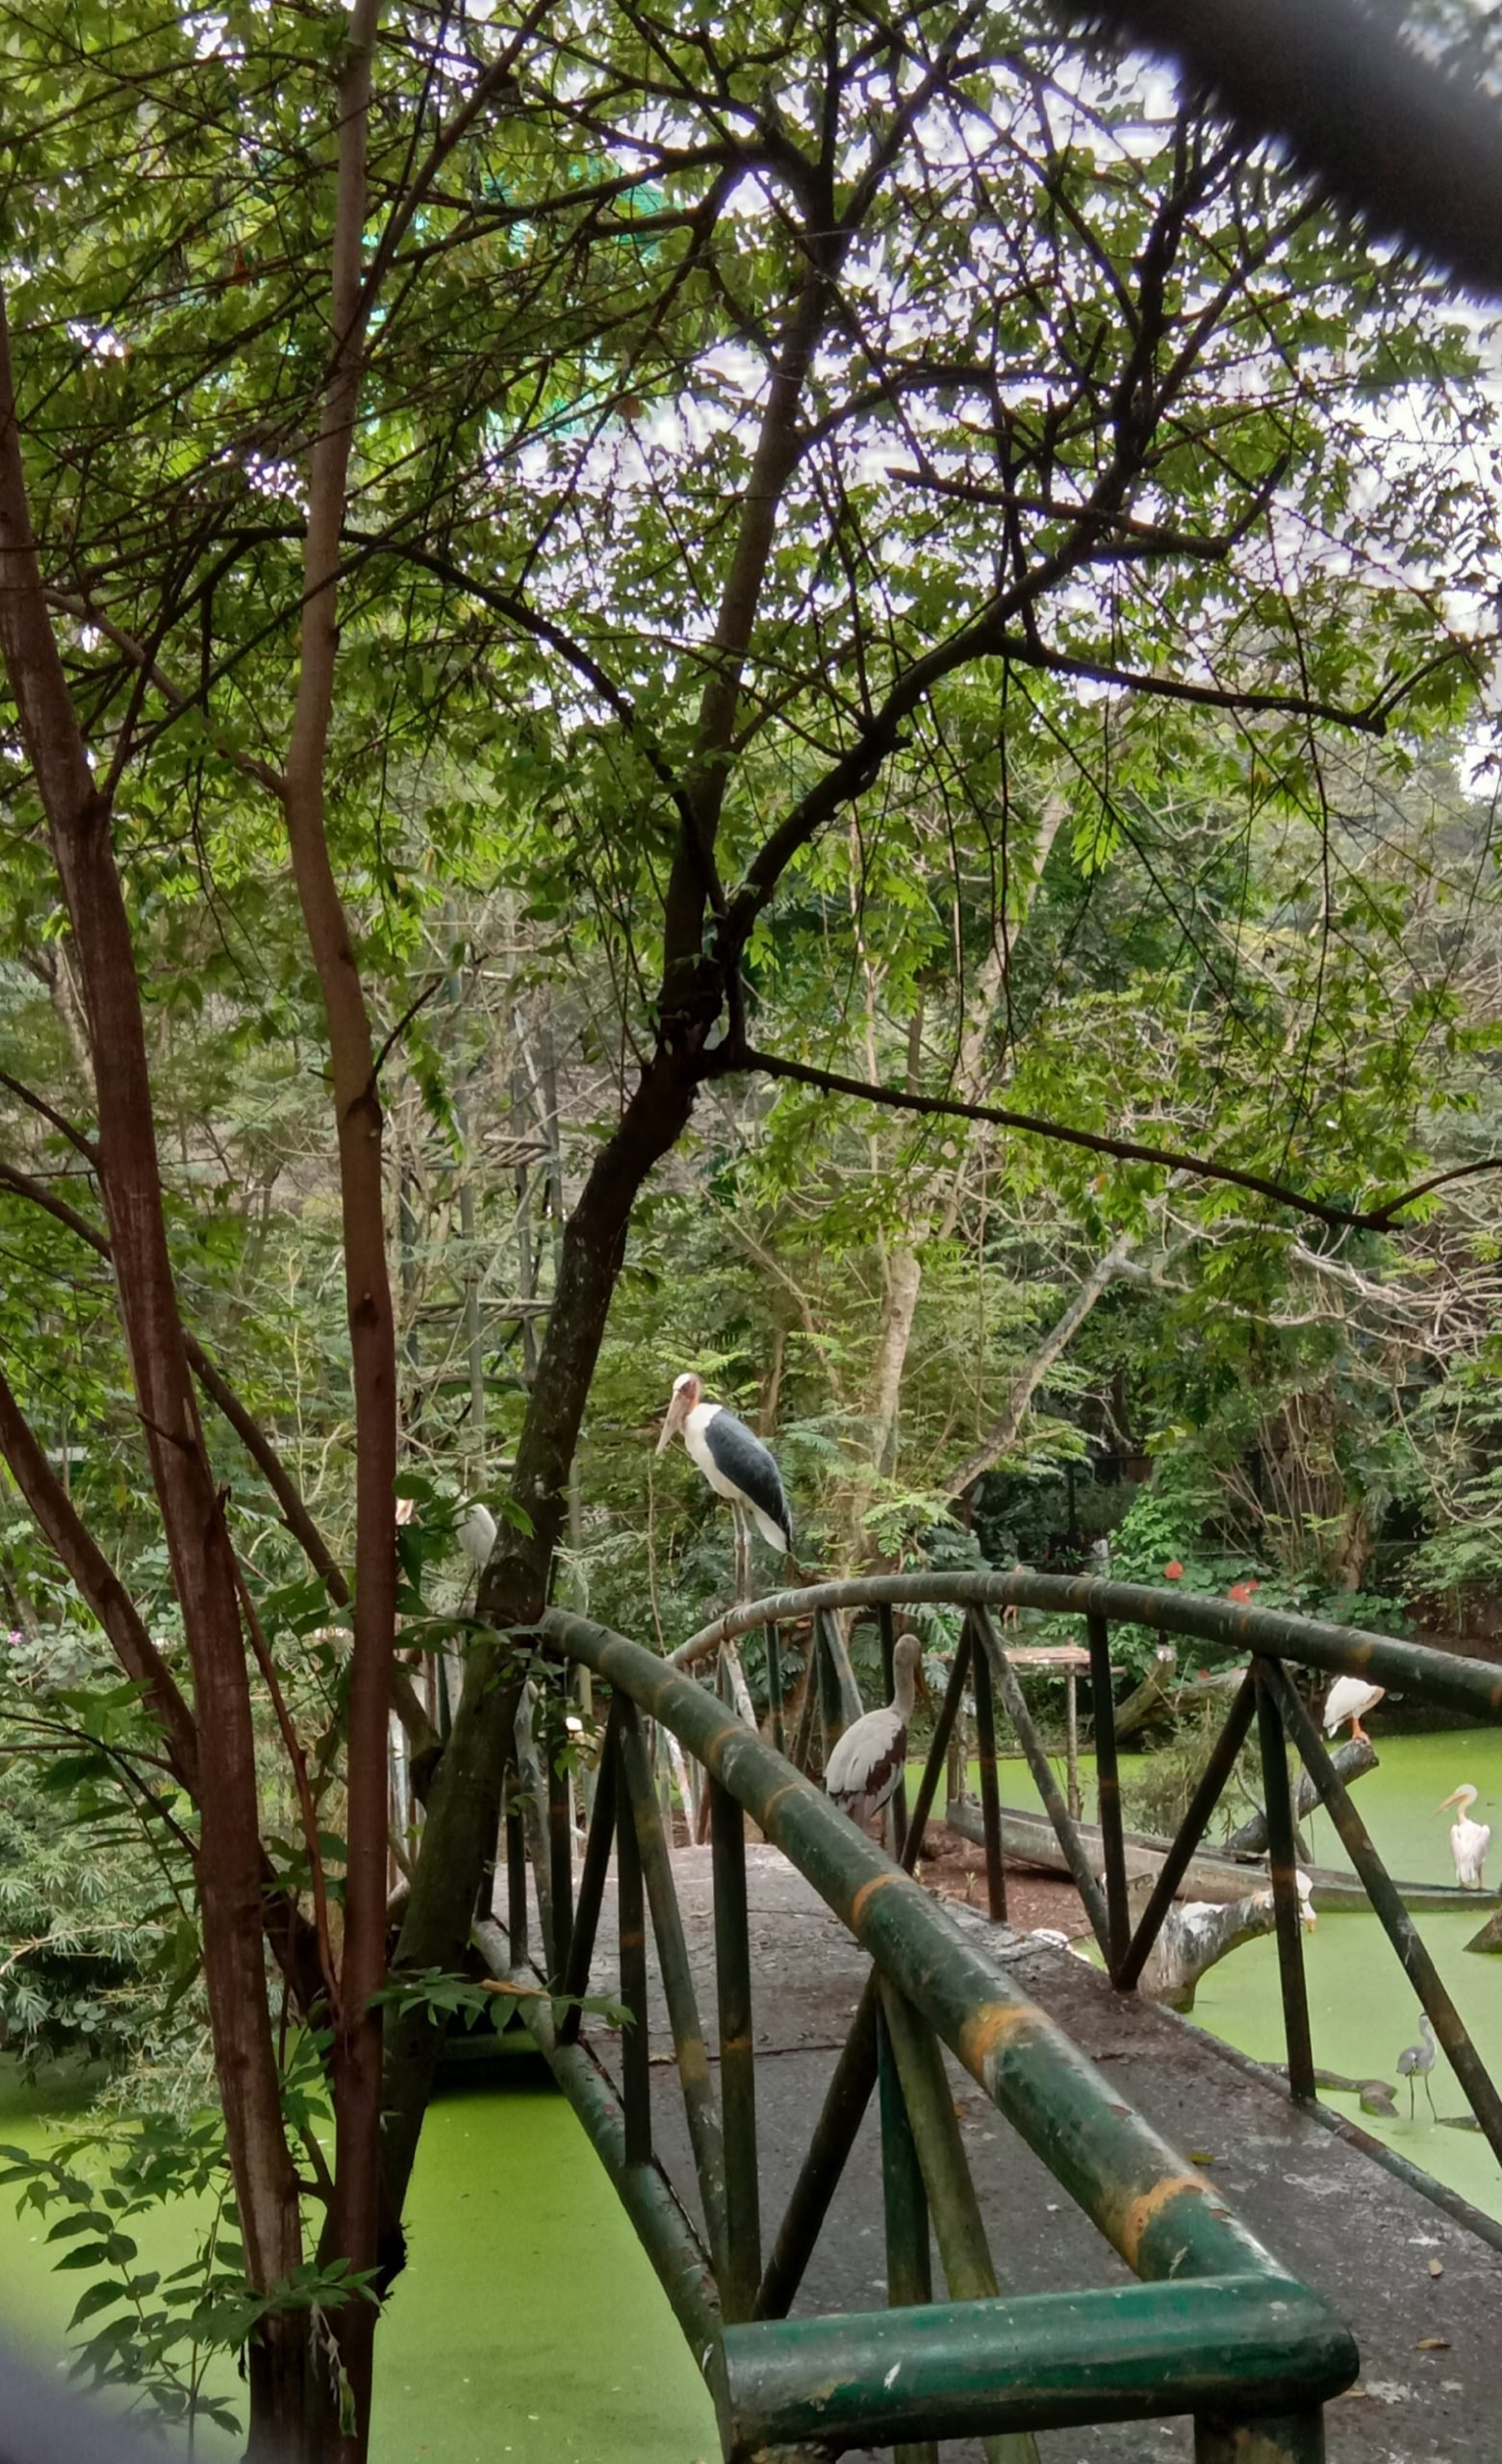 A Bridge on a Greenery Forest